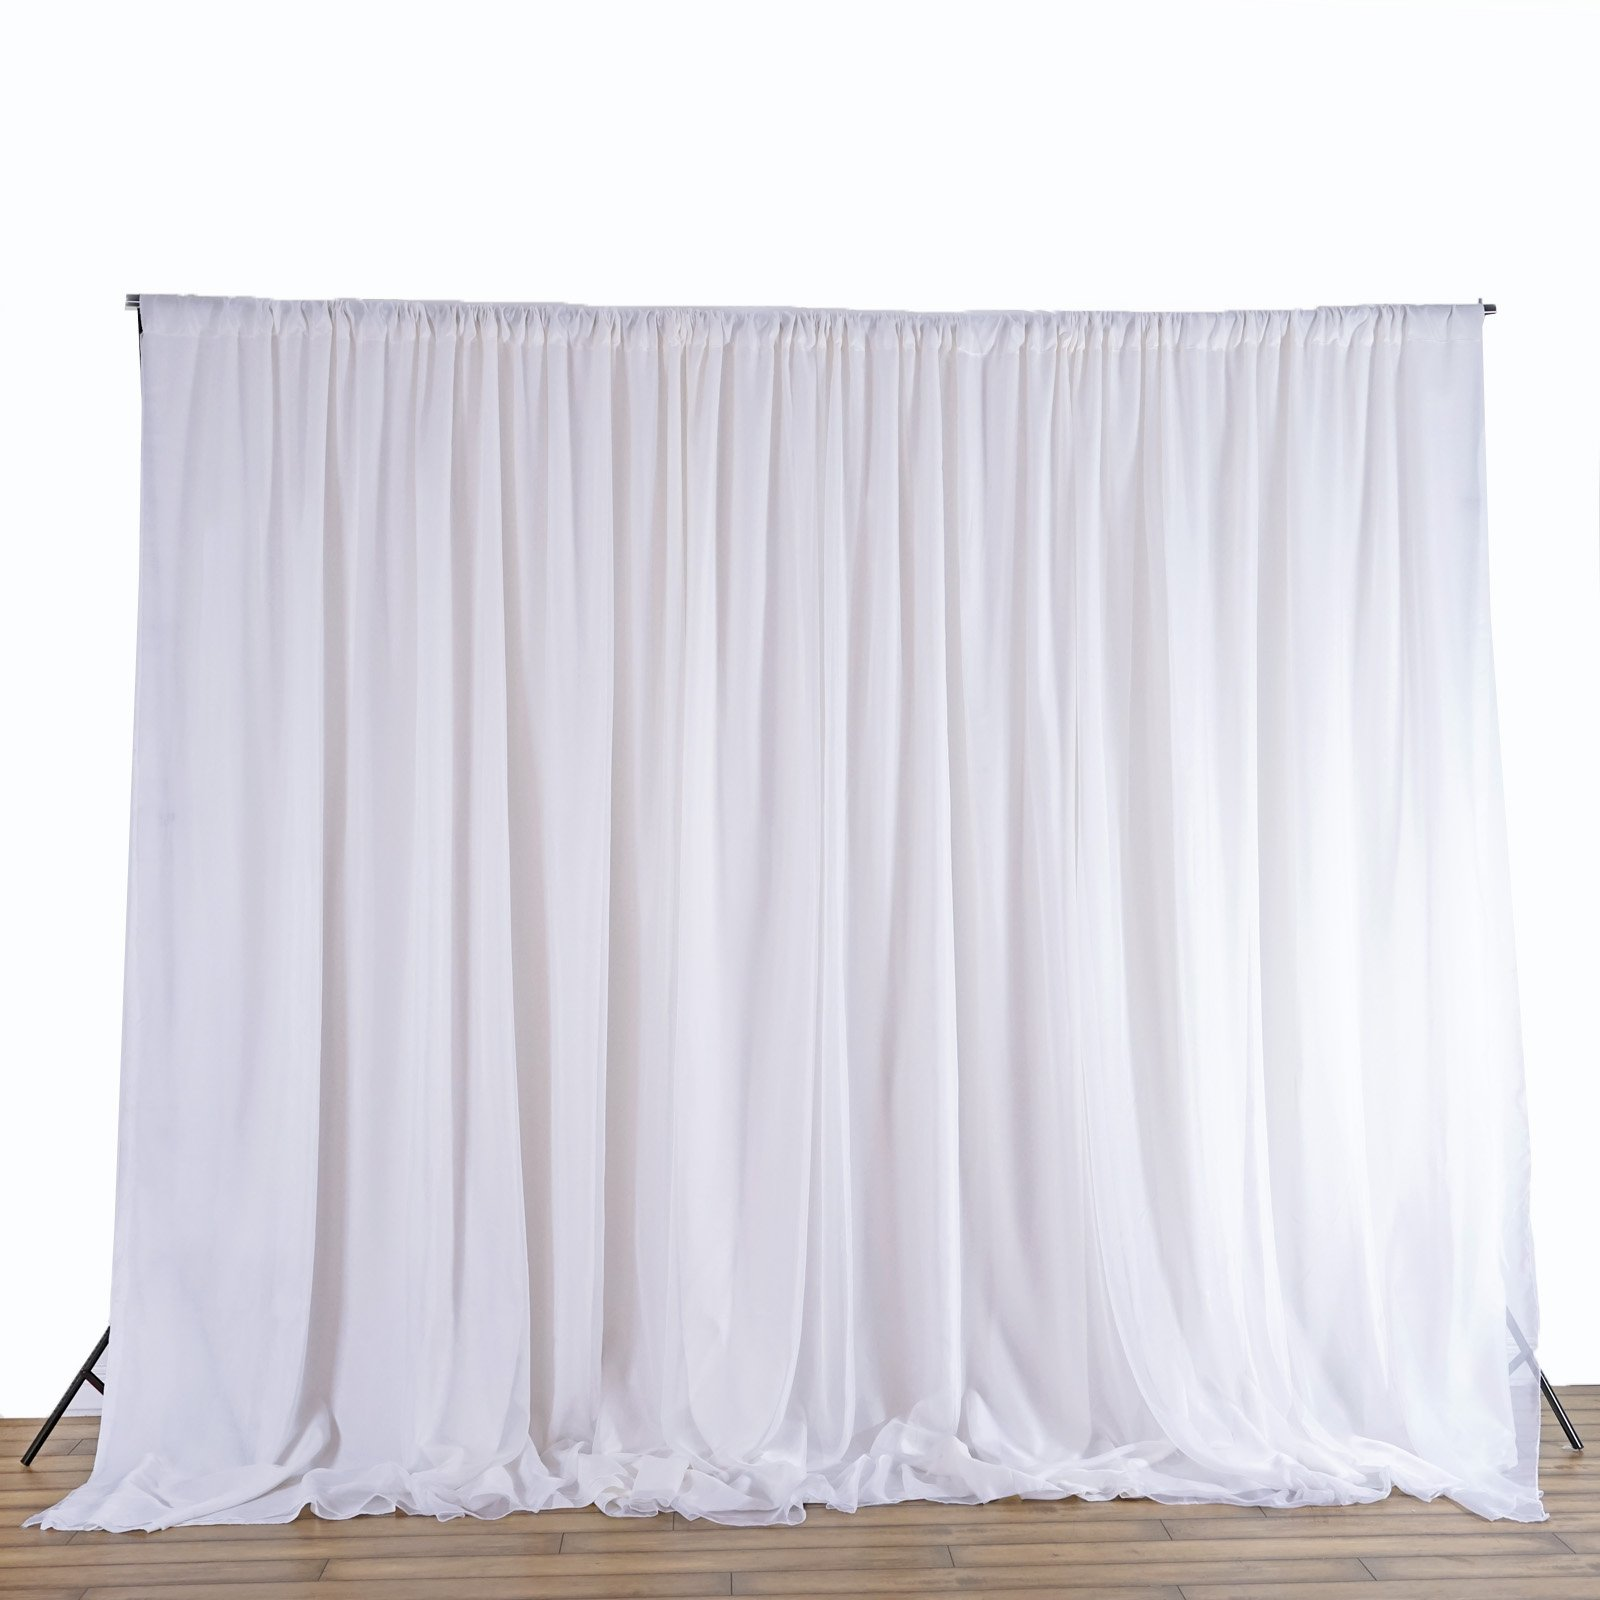 BalsaCircle 20 ft x 10 ft Fabric Backdrop Curtain - 2 colors available by BalsaCircle